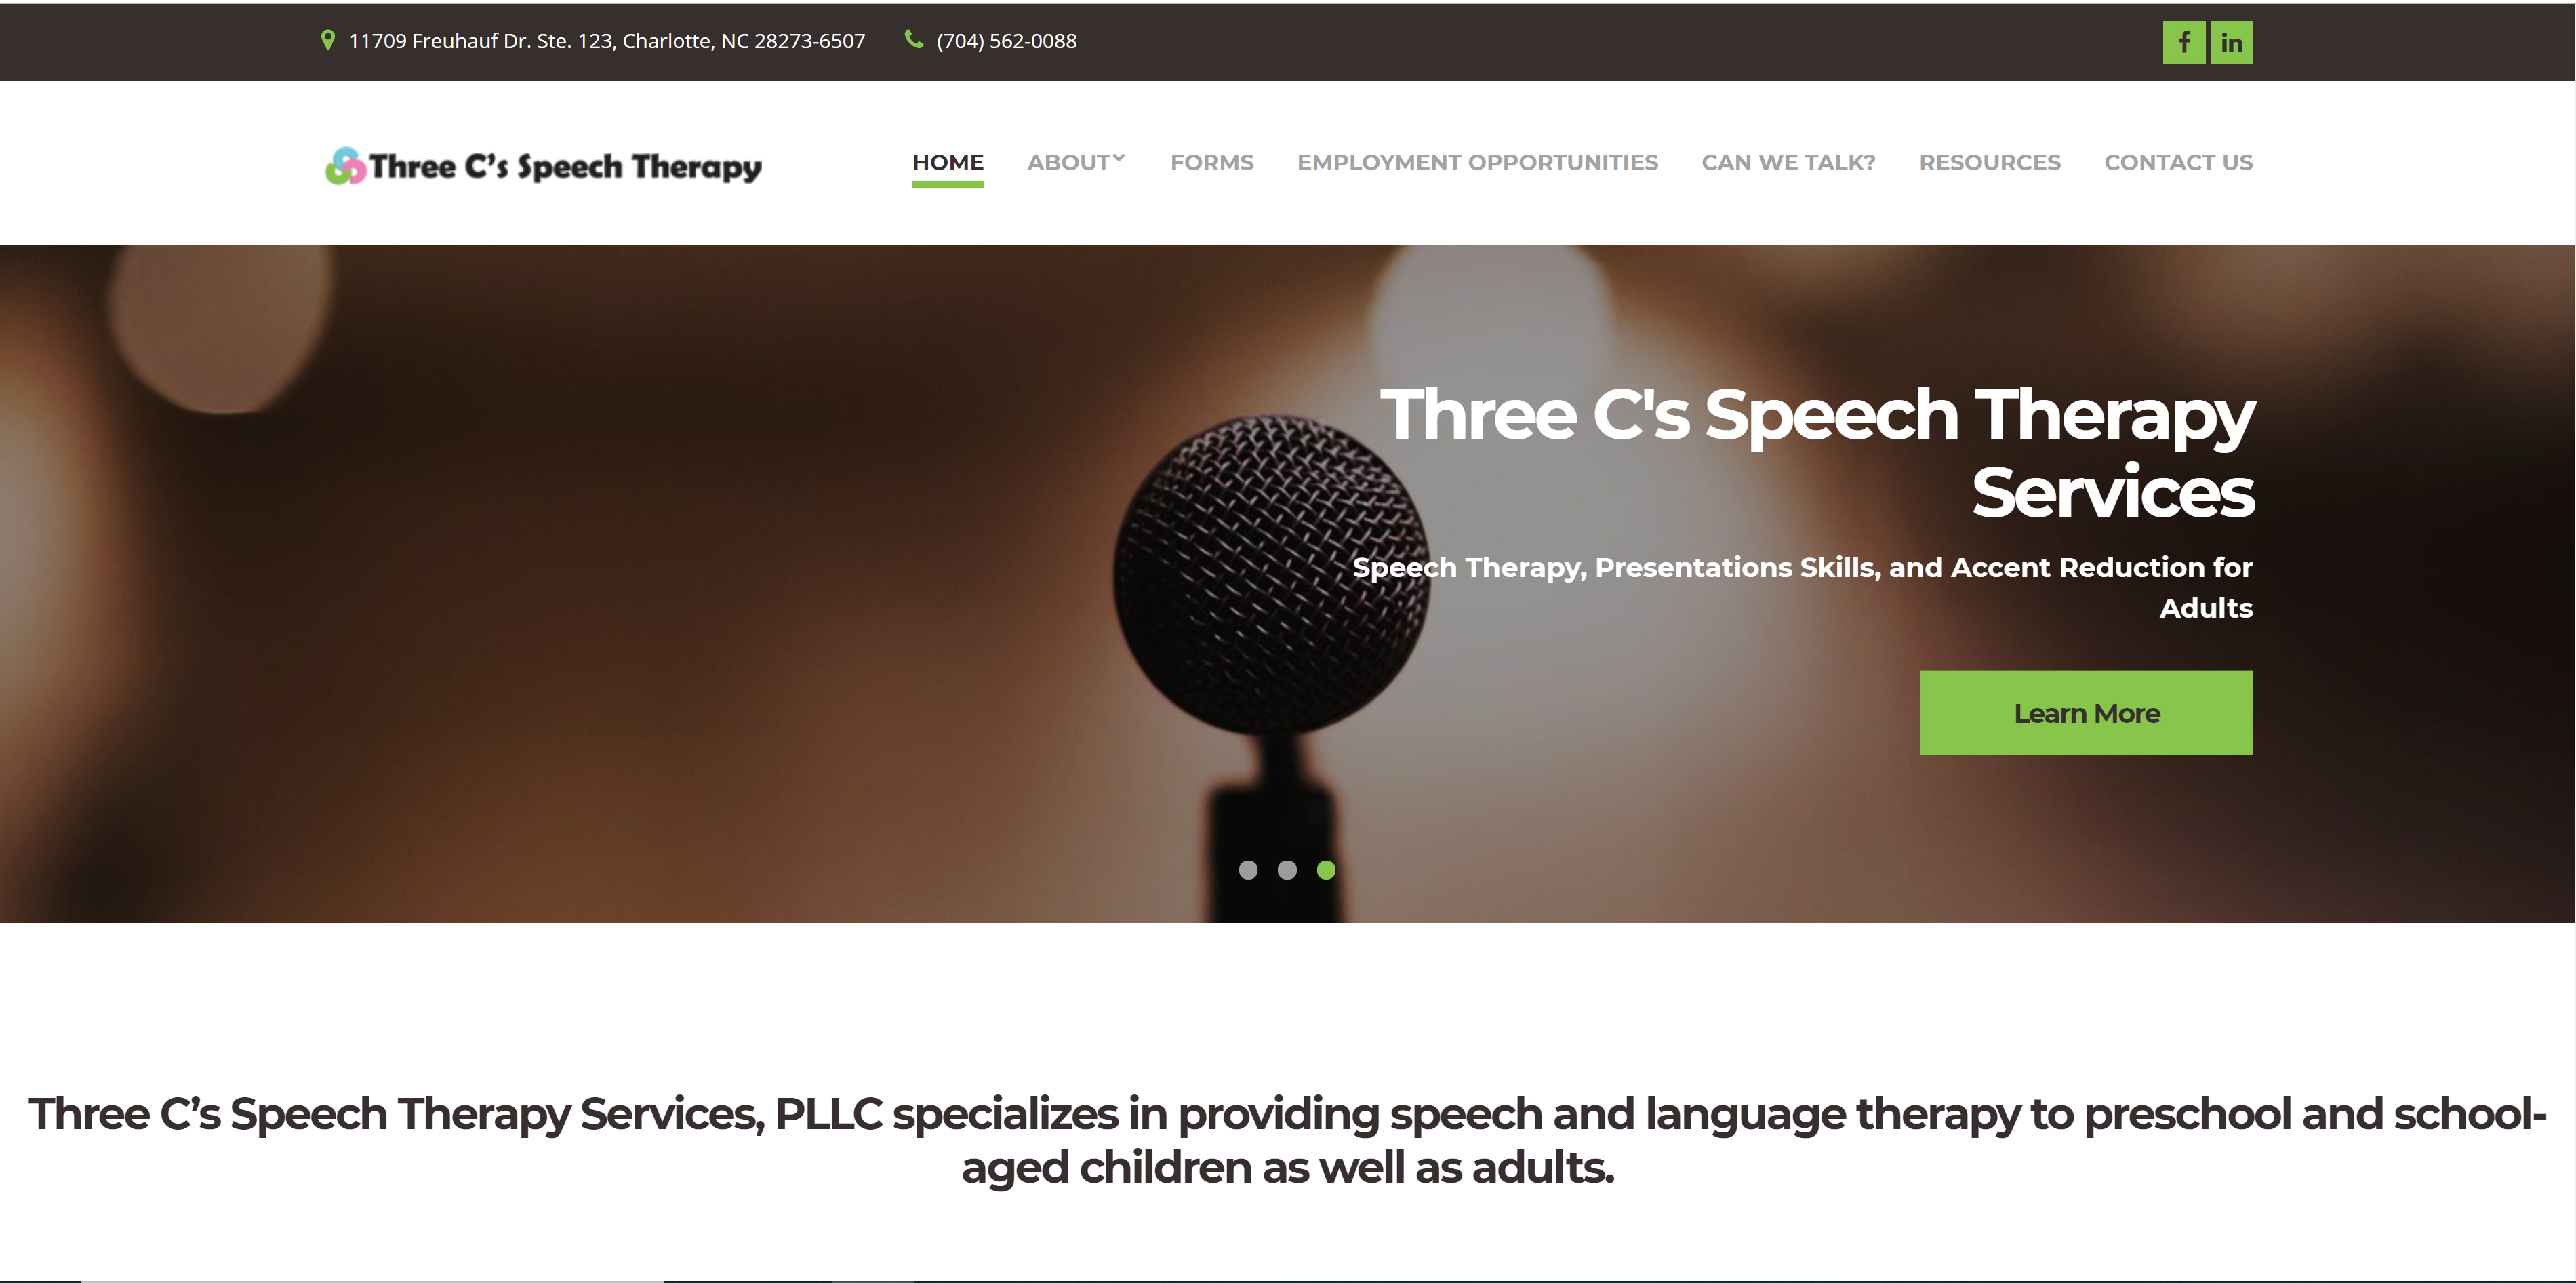 Three C's Speech Therapy